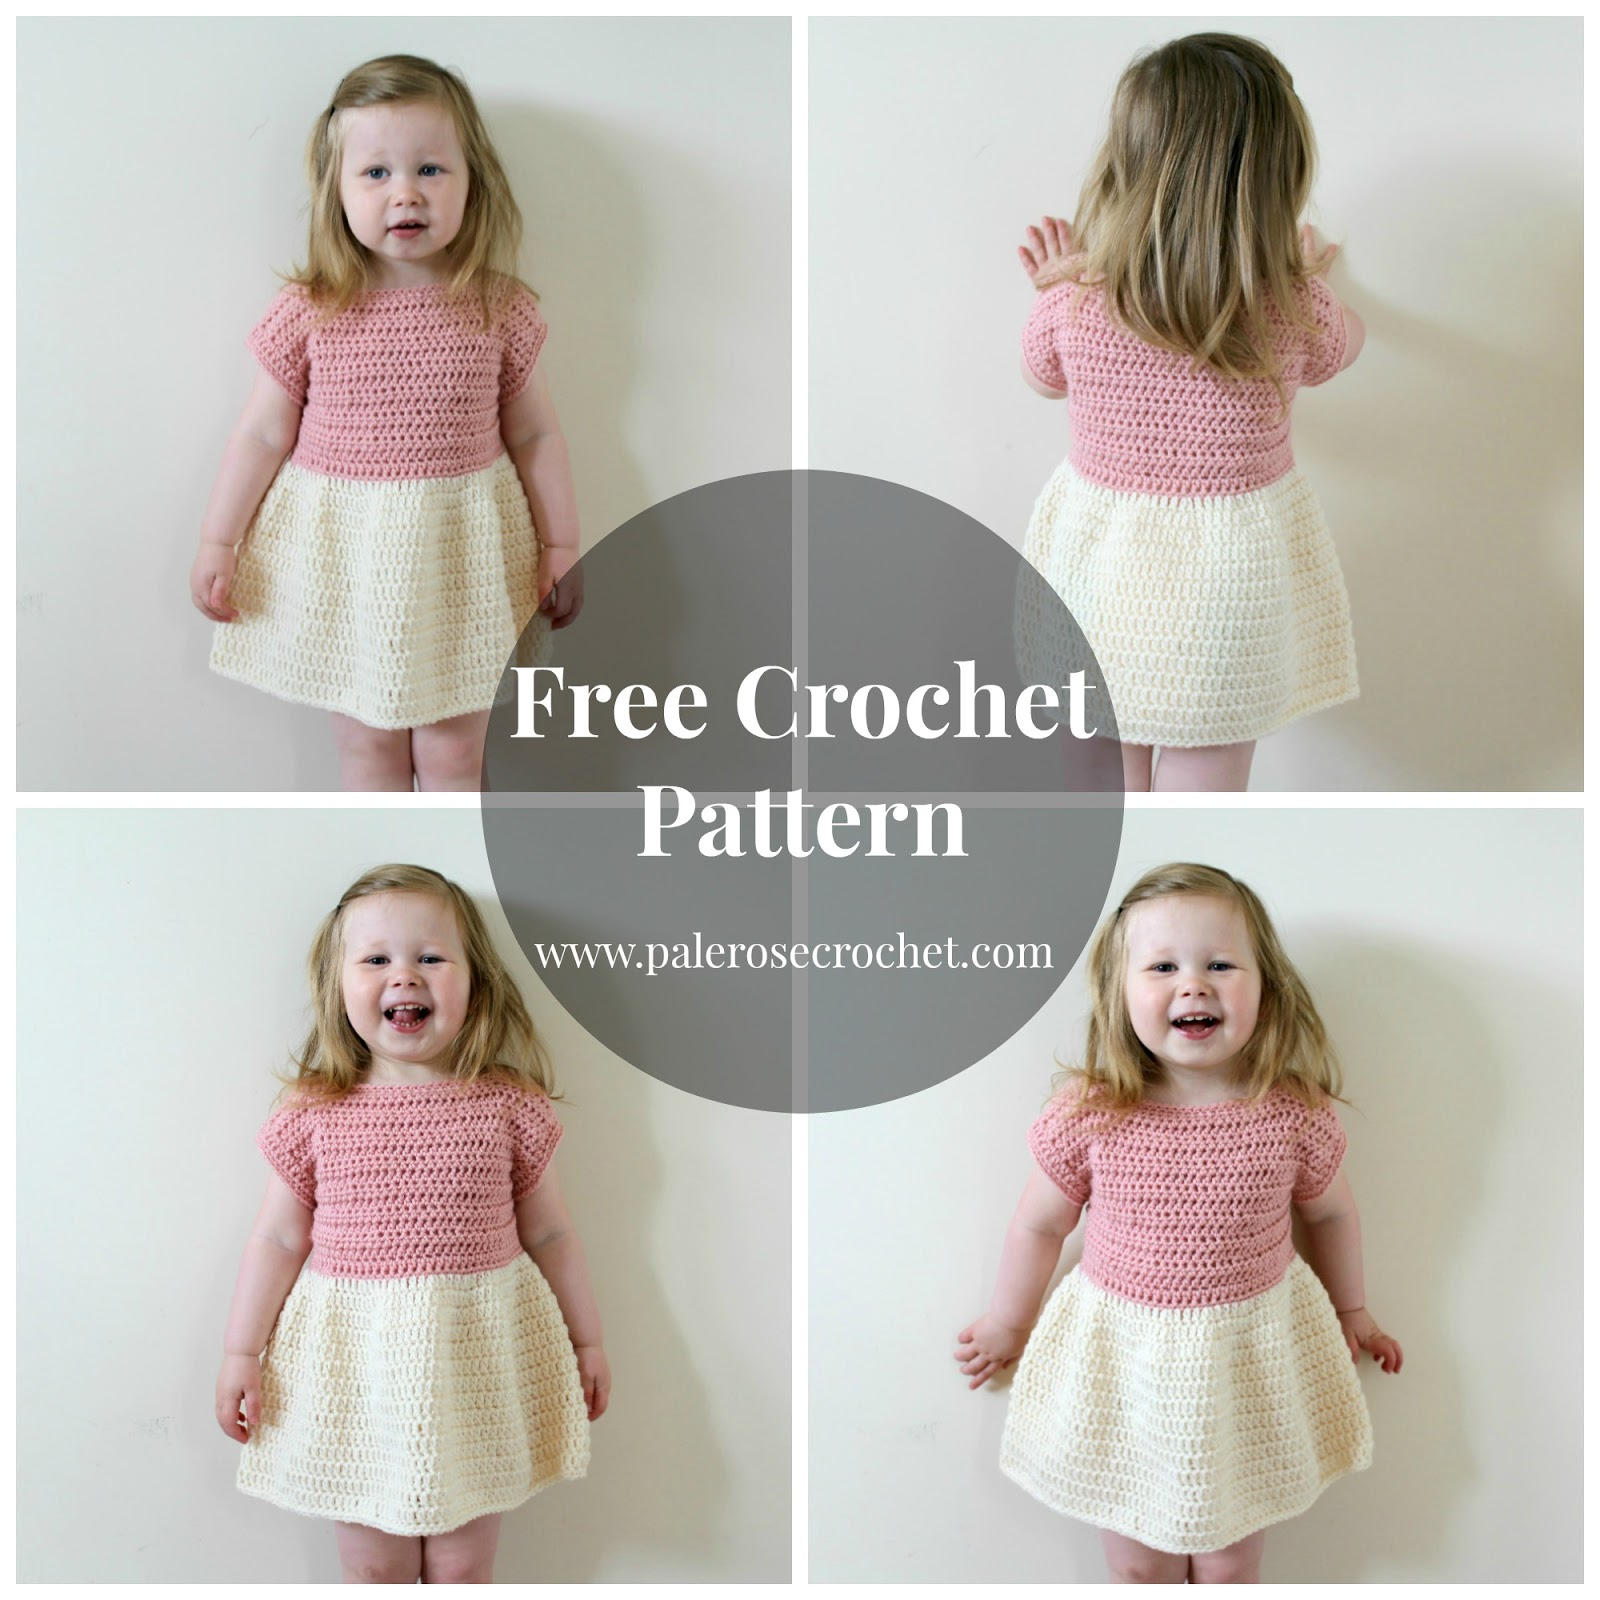 Crochet Patterns Galore - Toddler Party Dress